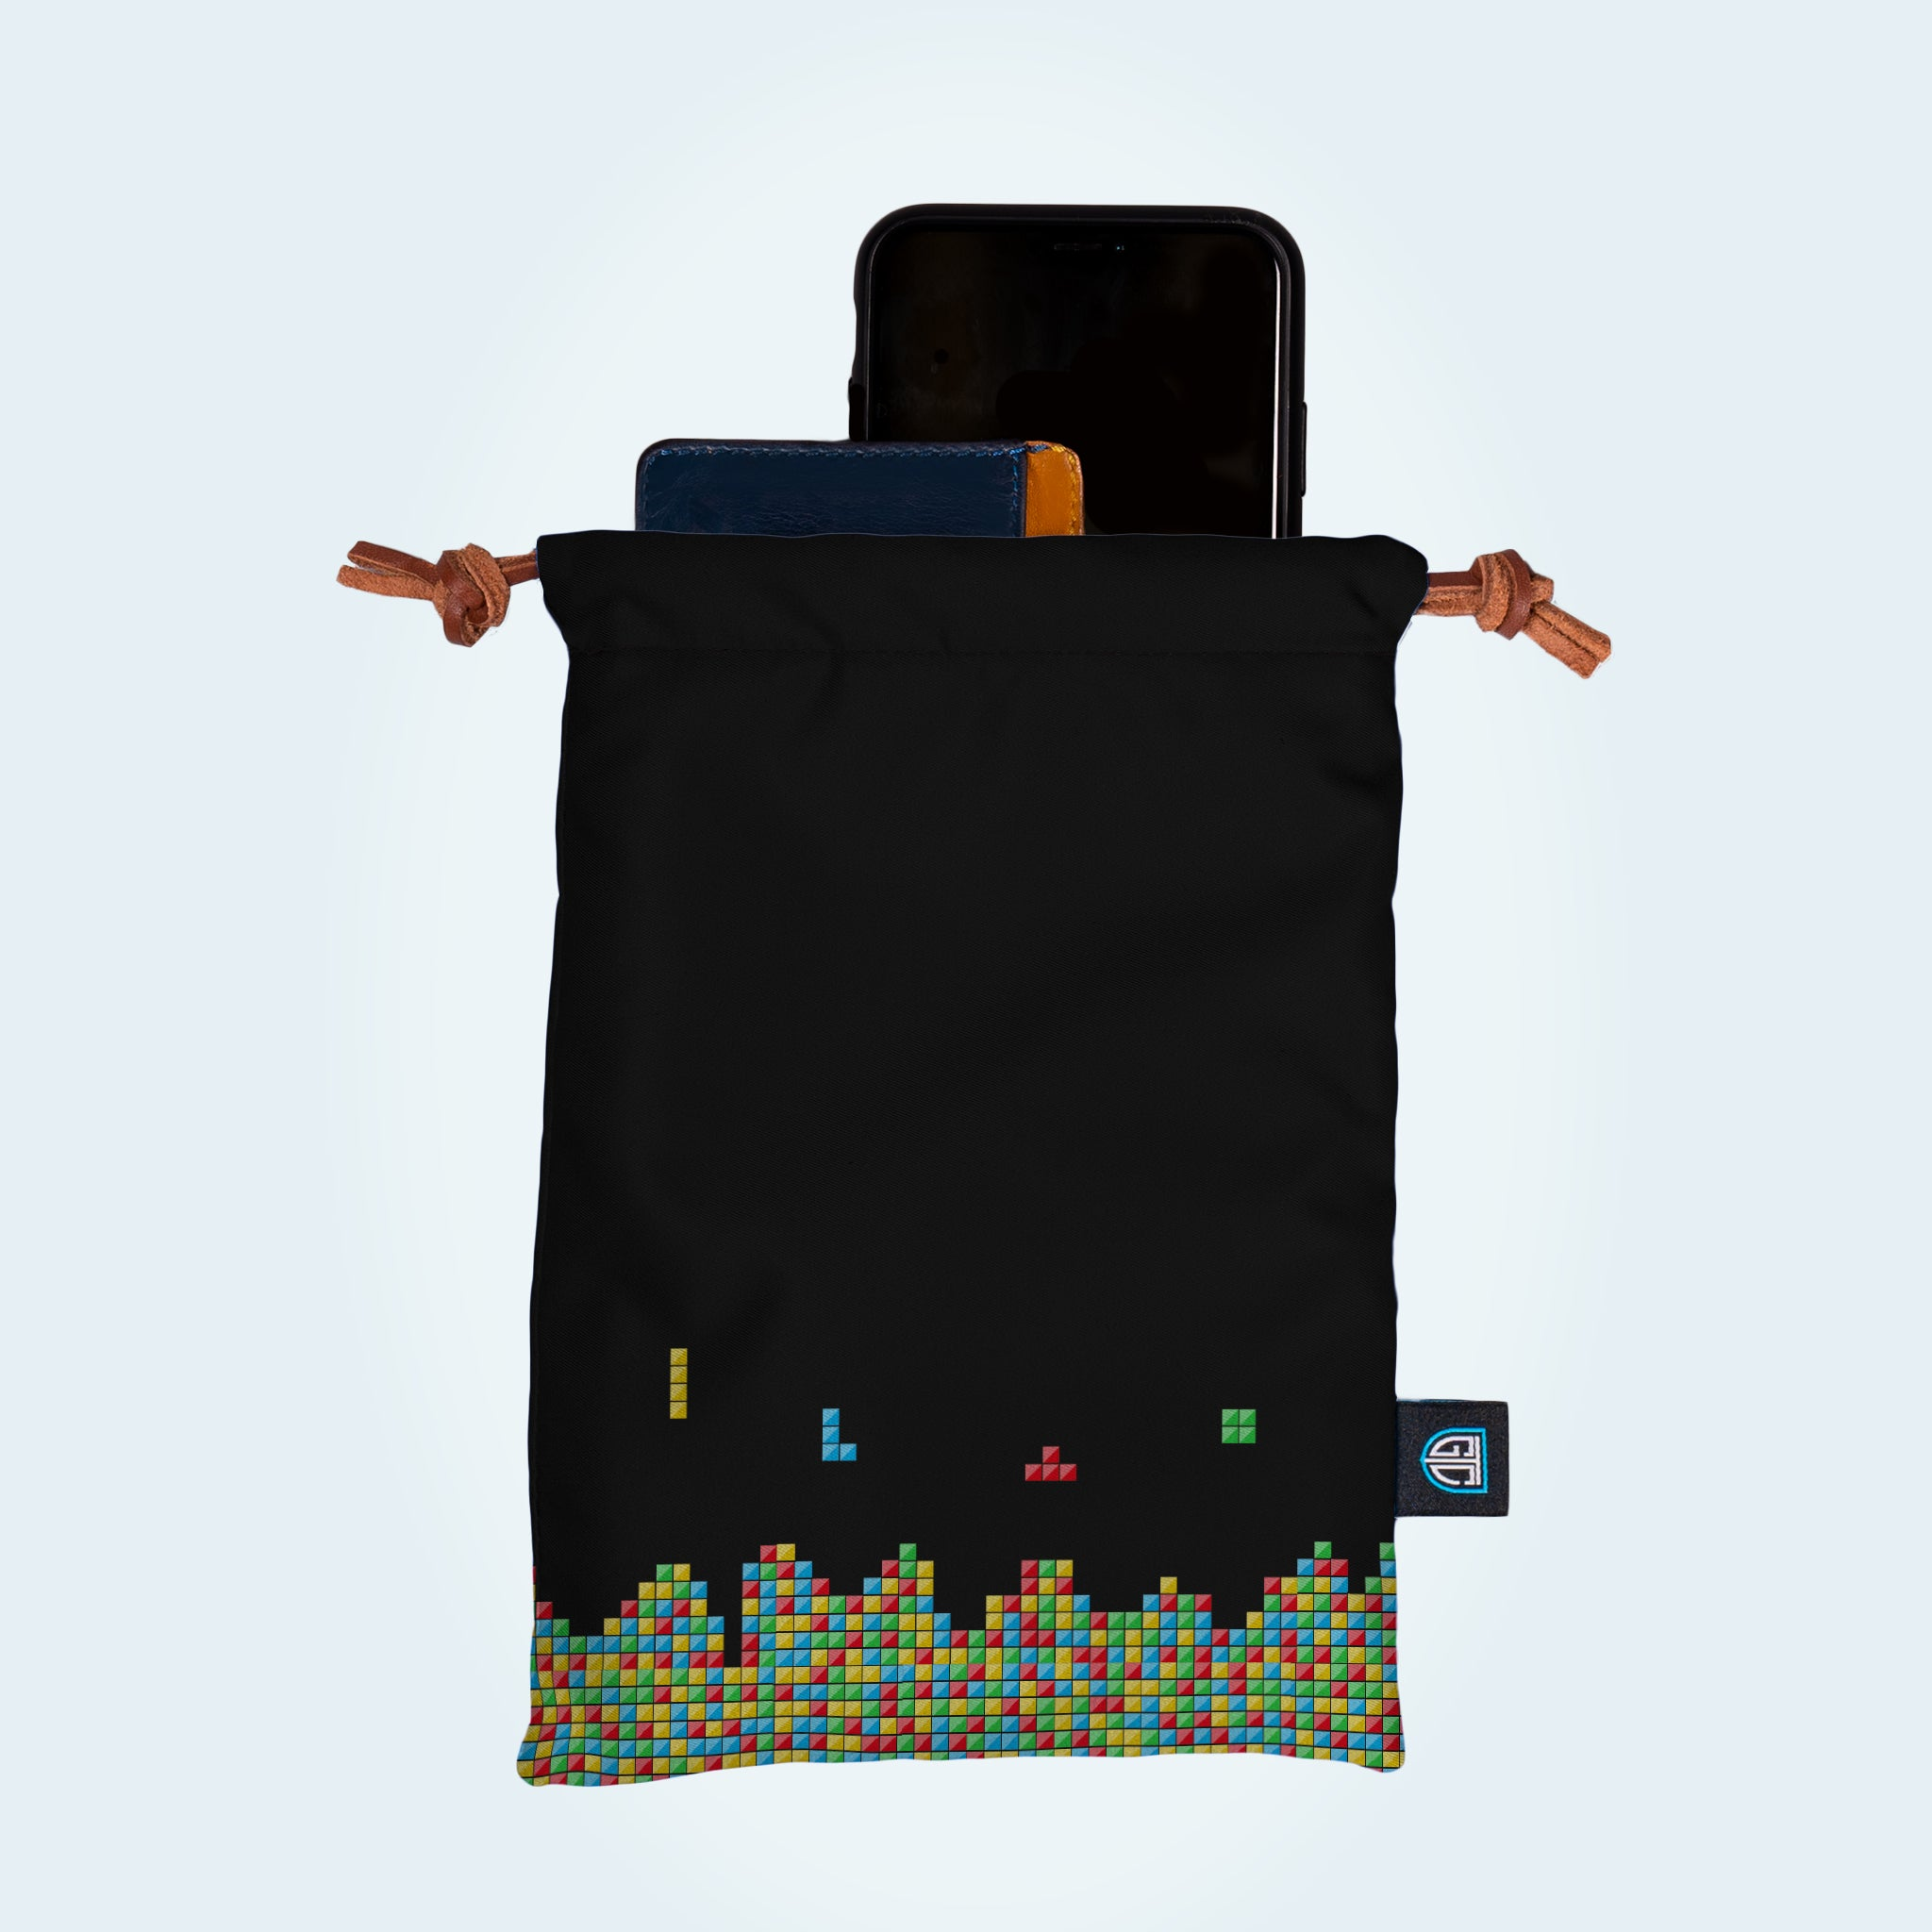 Tetris Accessory Bag - personalised golf clothing, golf teamwear, Head Covers, Towels & accessories online